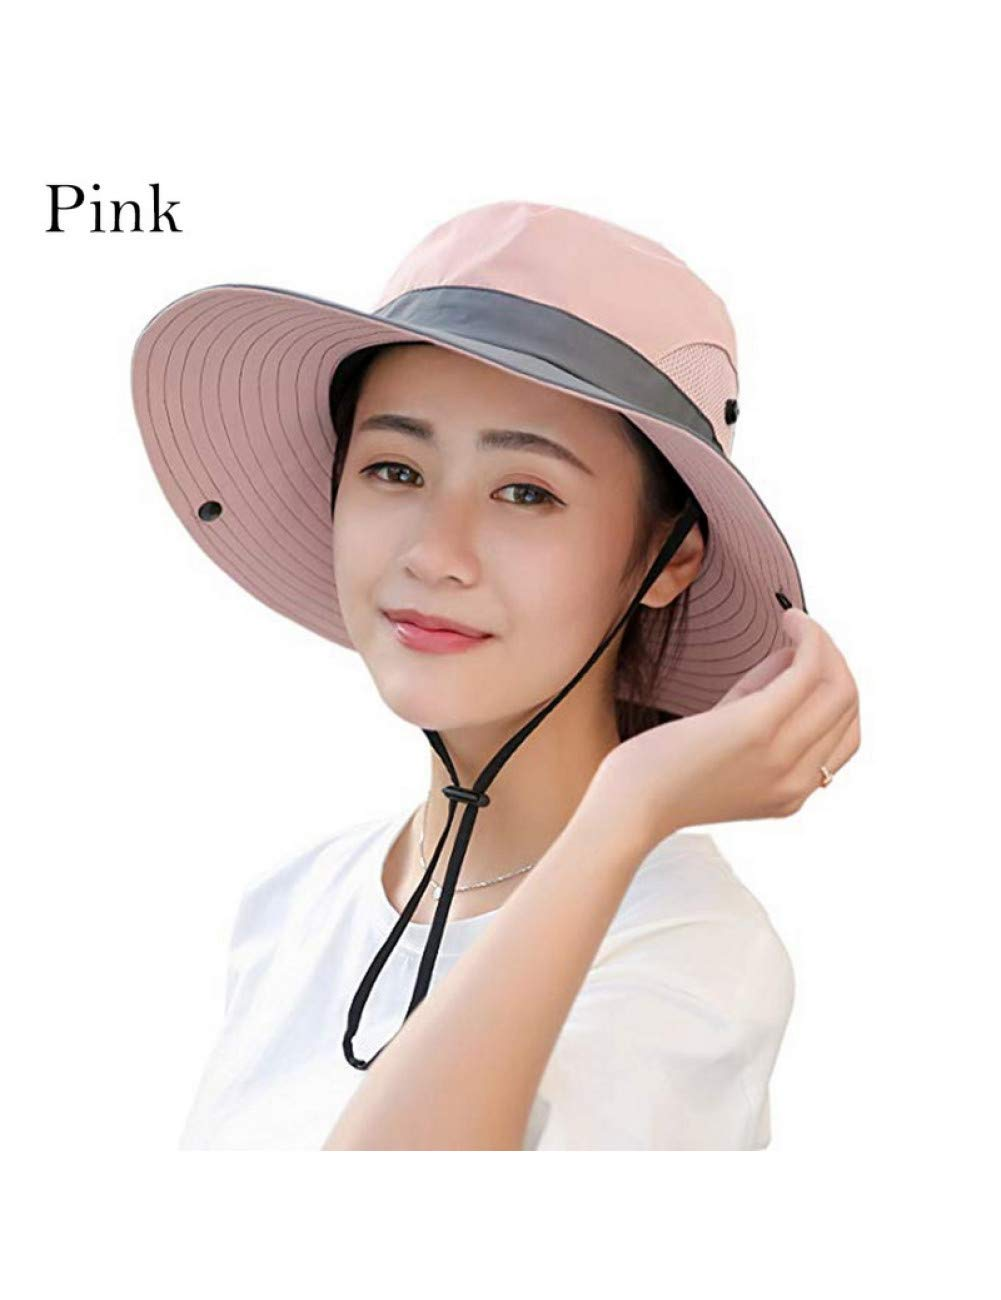 Pink PDHP Sunshade Hat Unisex Summer Sun Hats For Women Breathable Sunhat Outdoor Uv Predection Top Bucket Hats Fishing